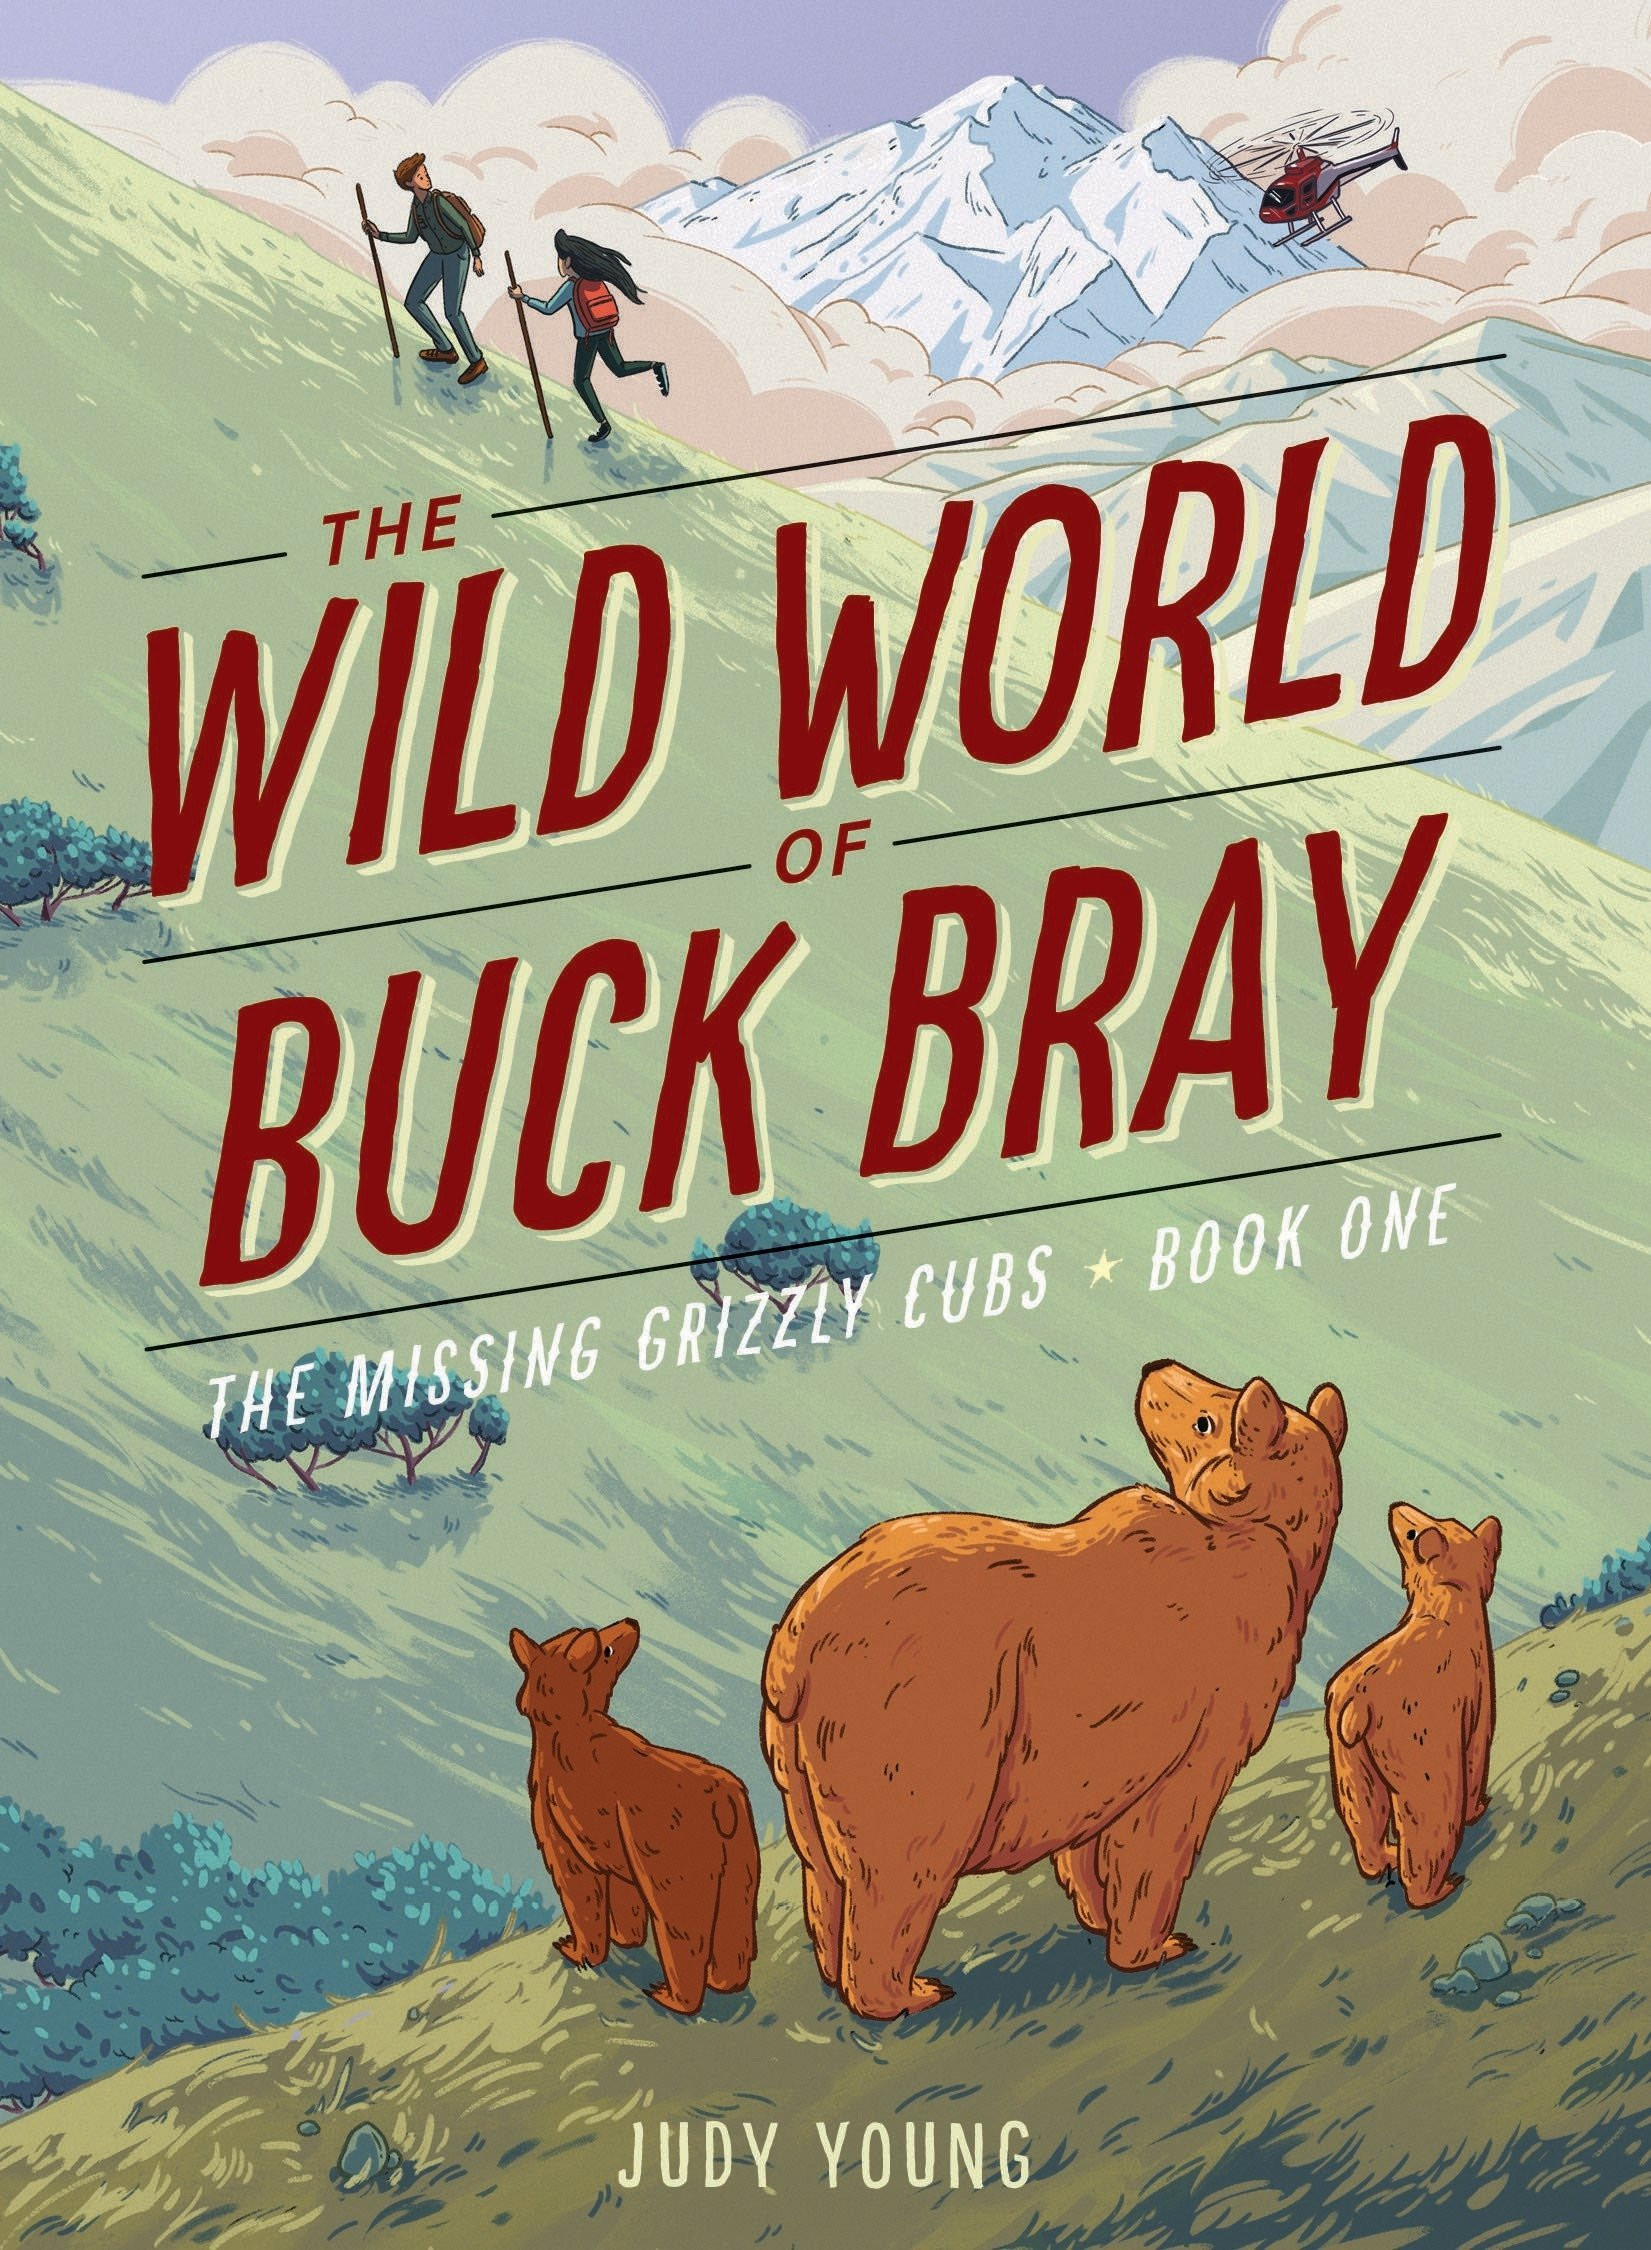 Download The Missing Grizzly Cubs (The Wild World of Buck Bray) pdf epub